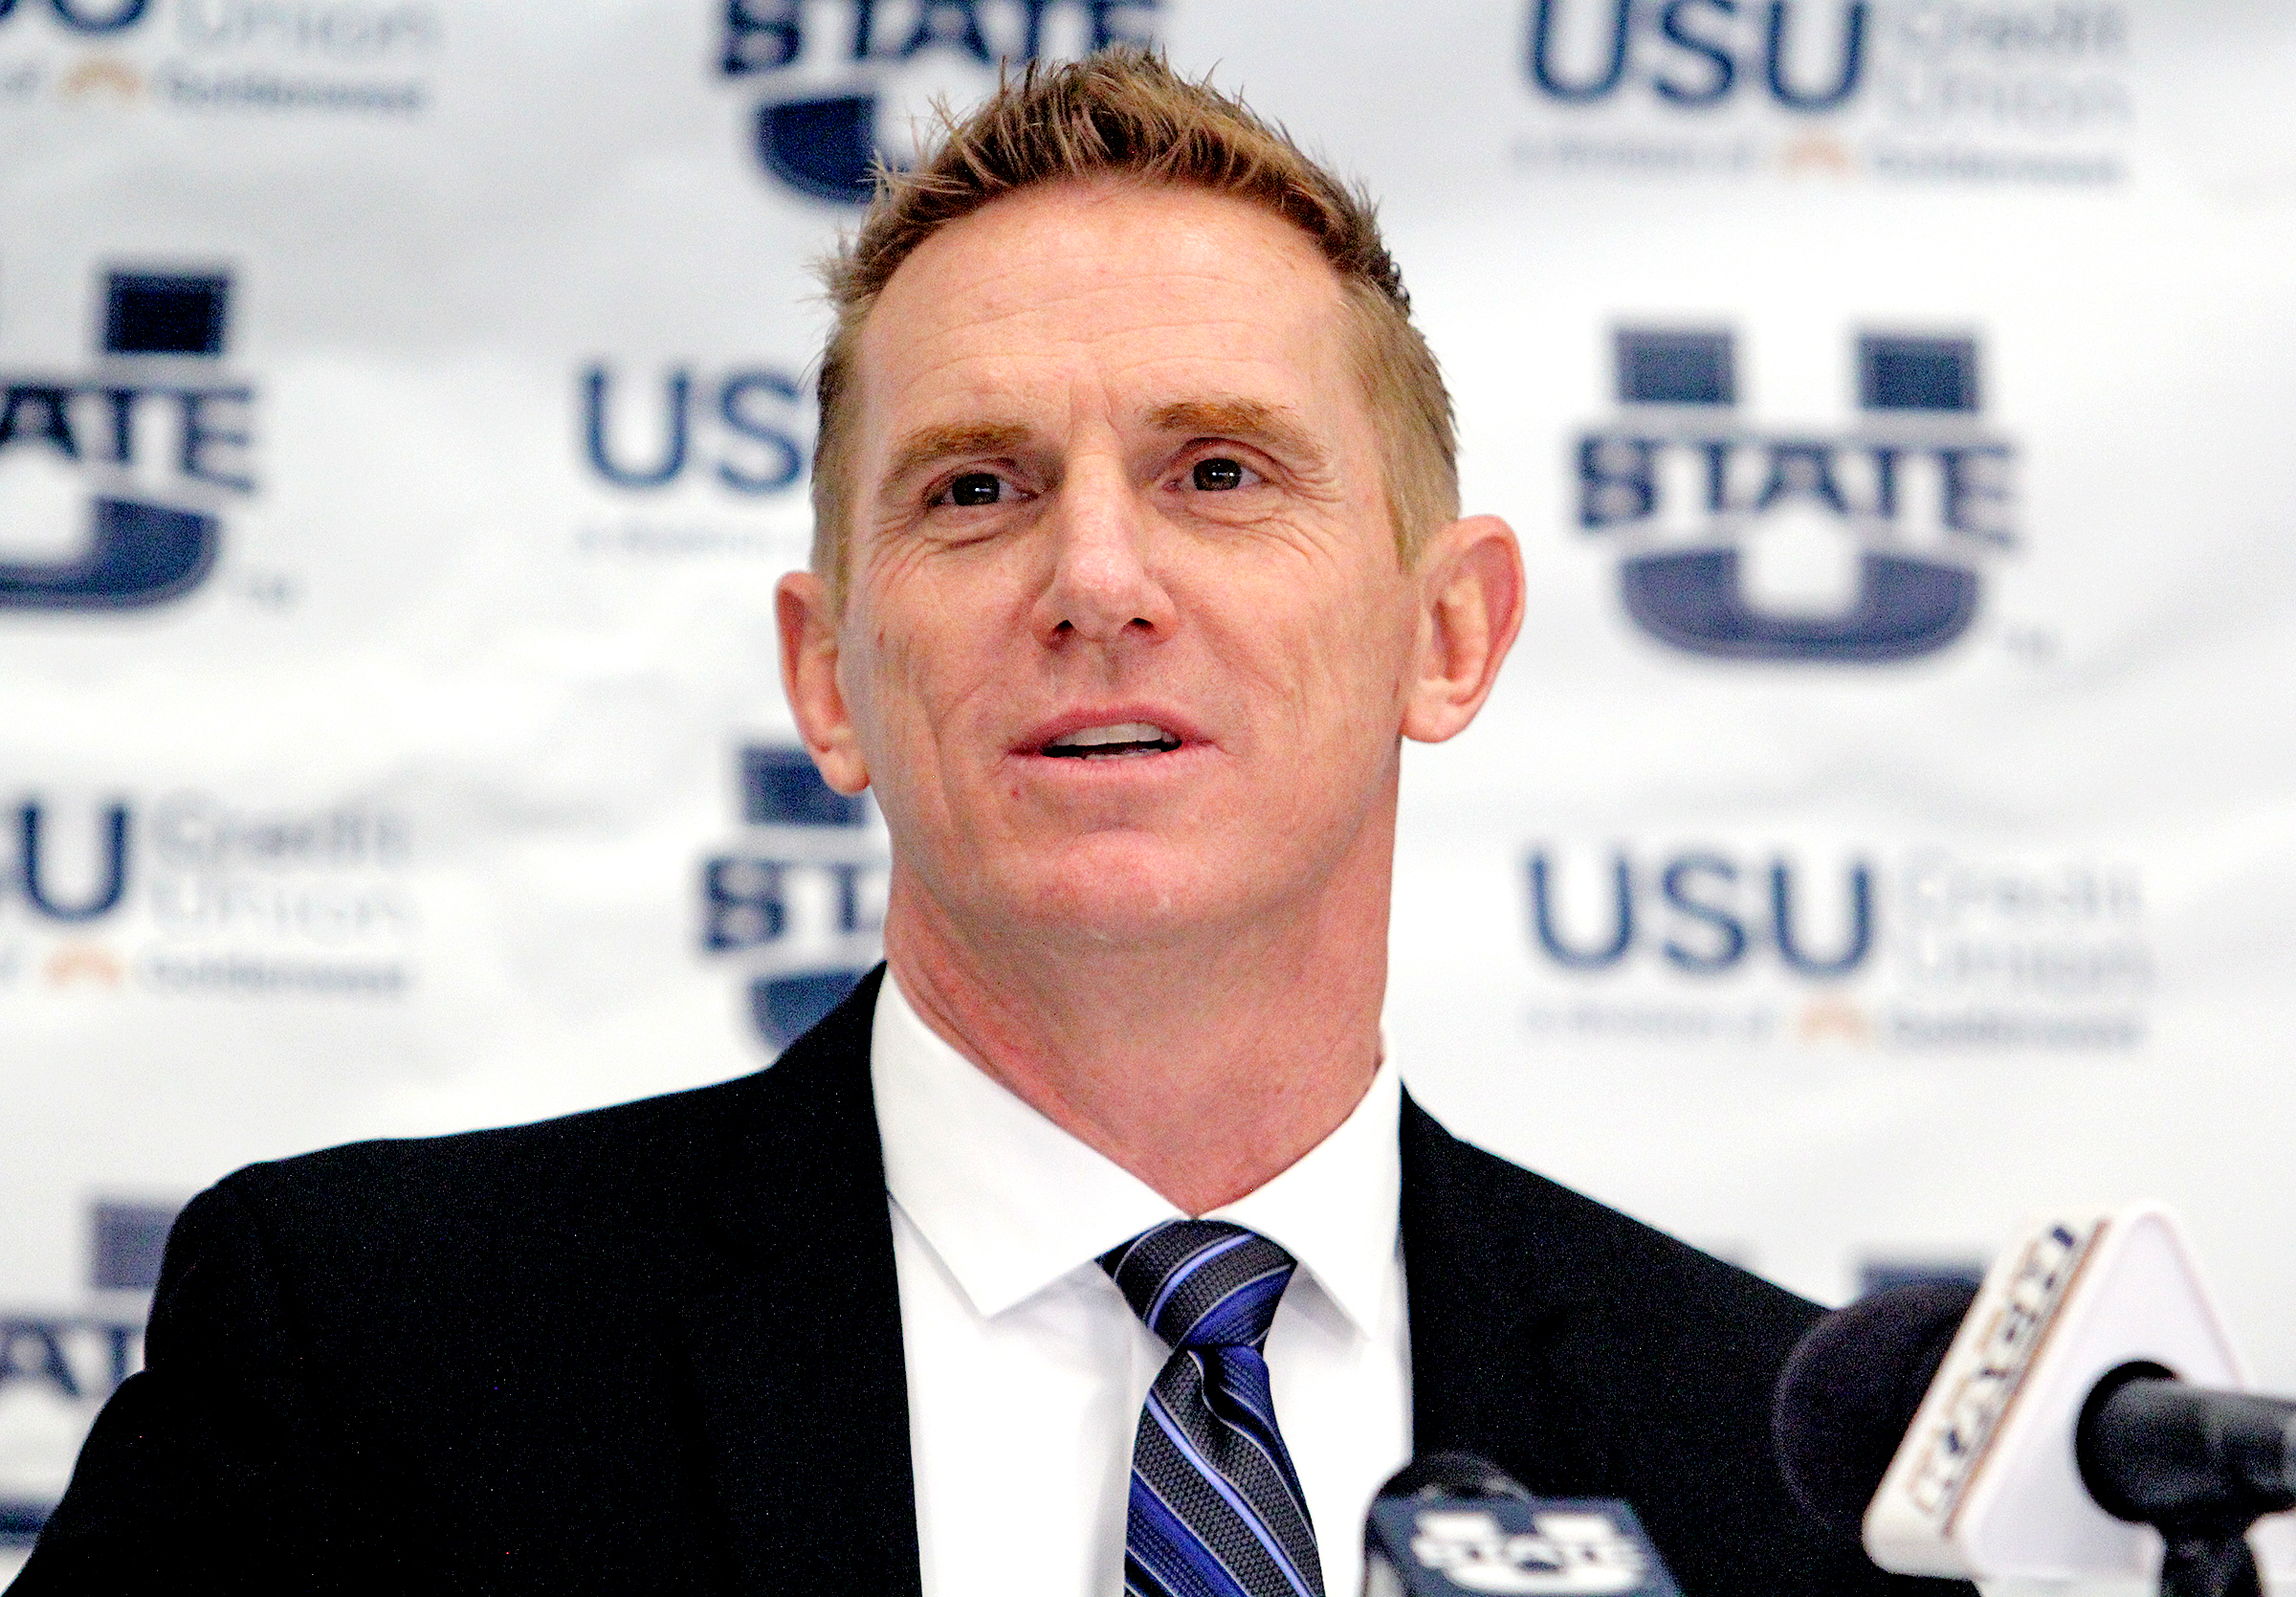 New Utah State football coach Blake Anderson answers questions at a press conference at Maverik Stadium in Logan.